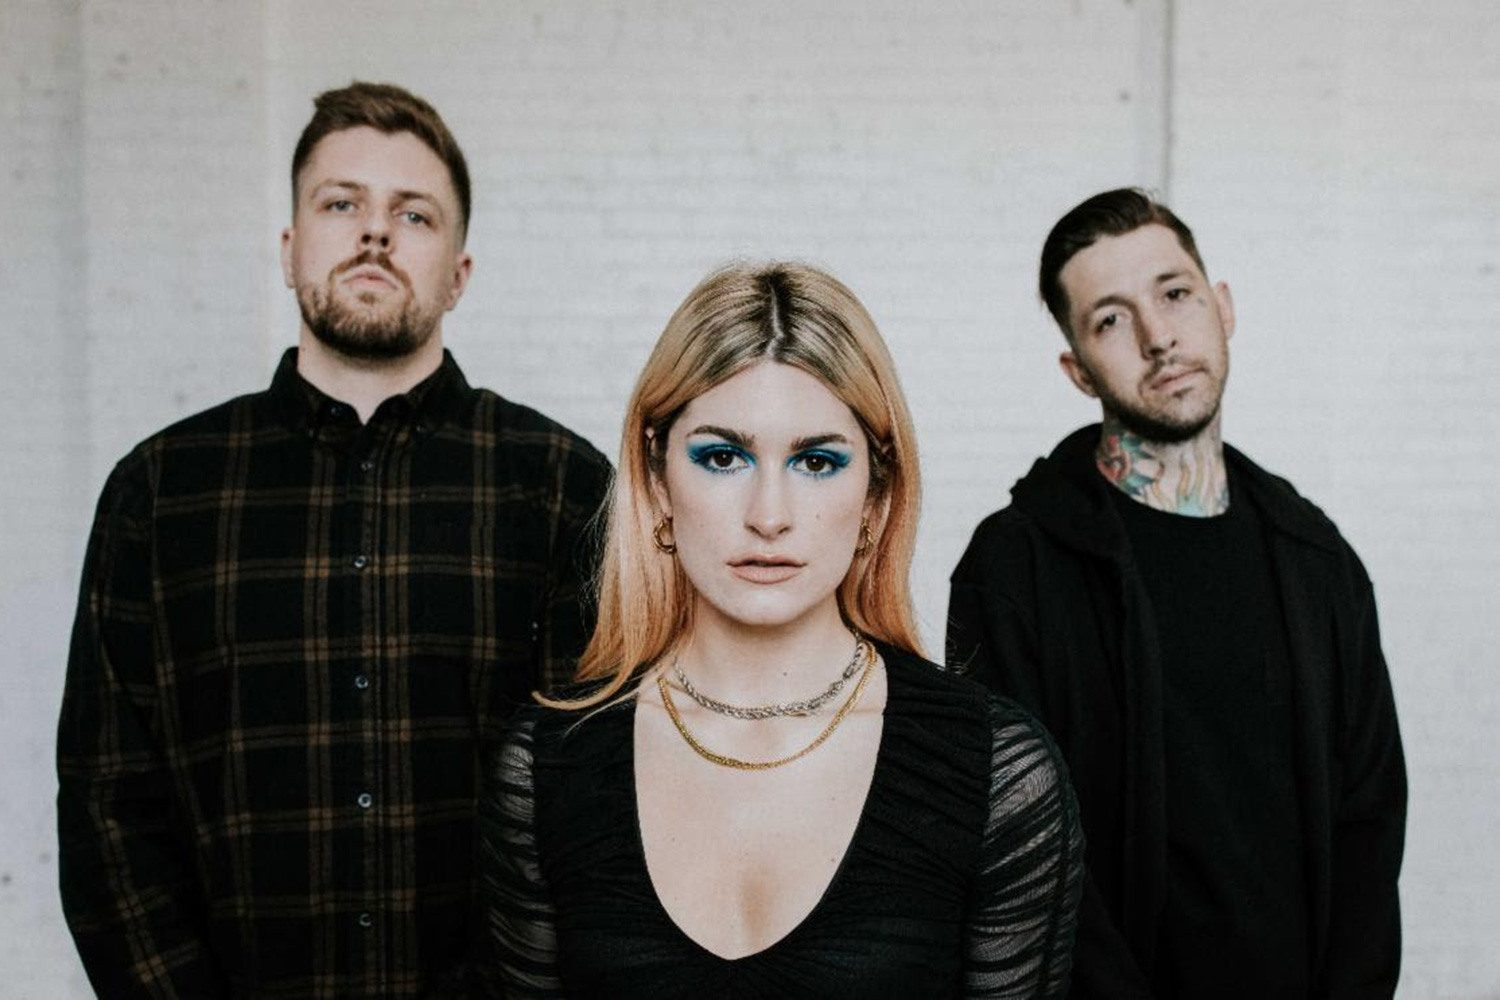 Spritbox have released a brand new song, 'Circle With Me'